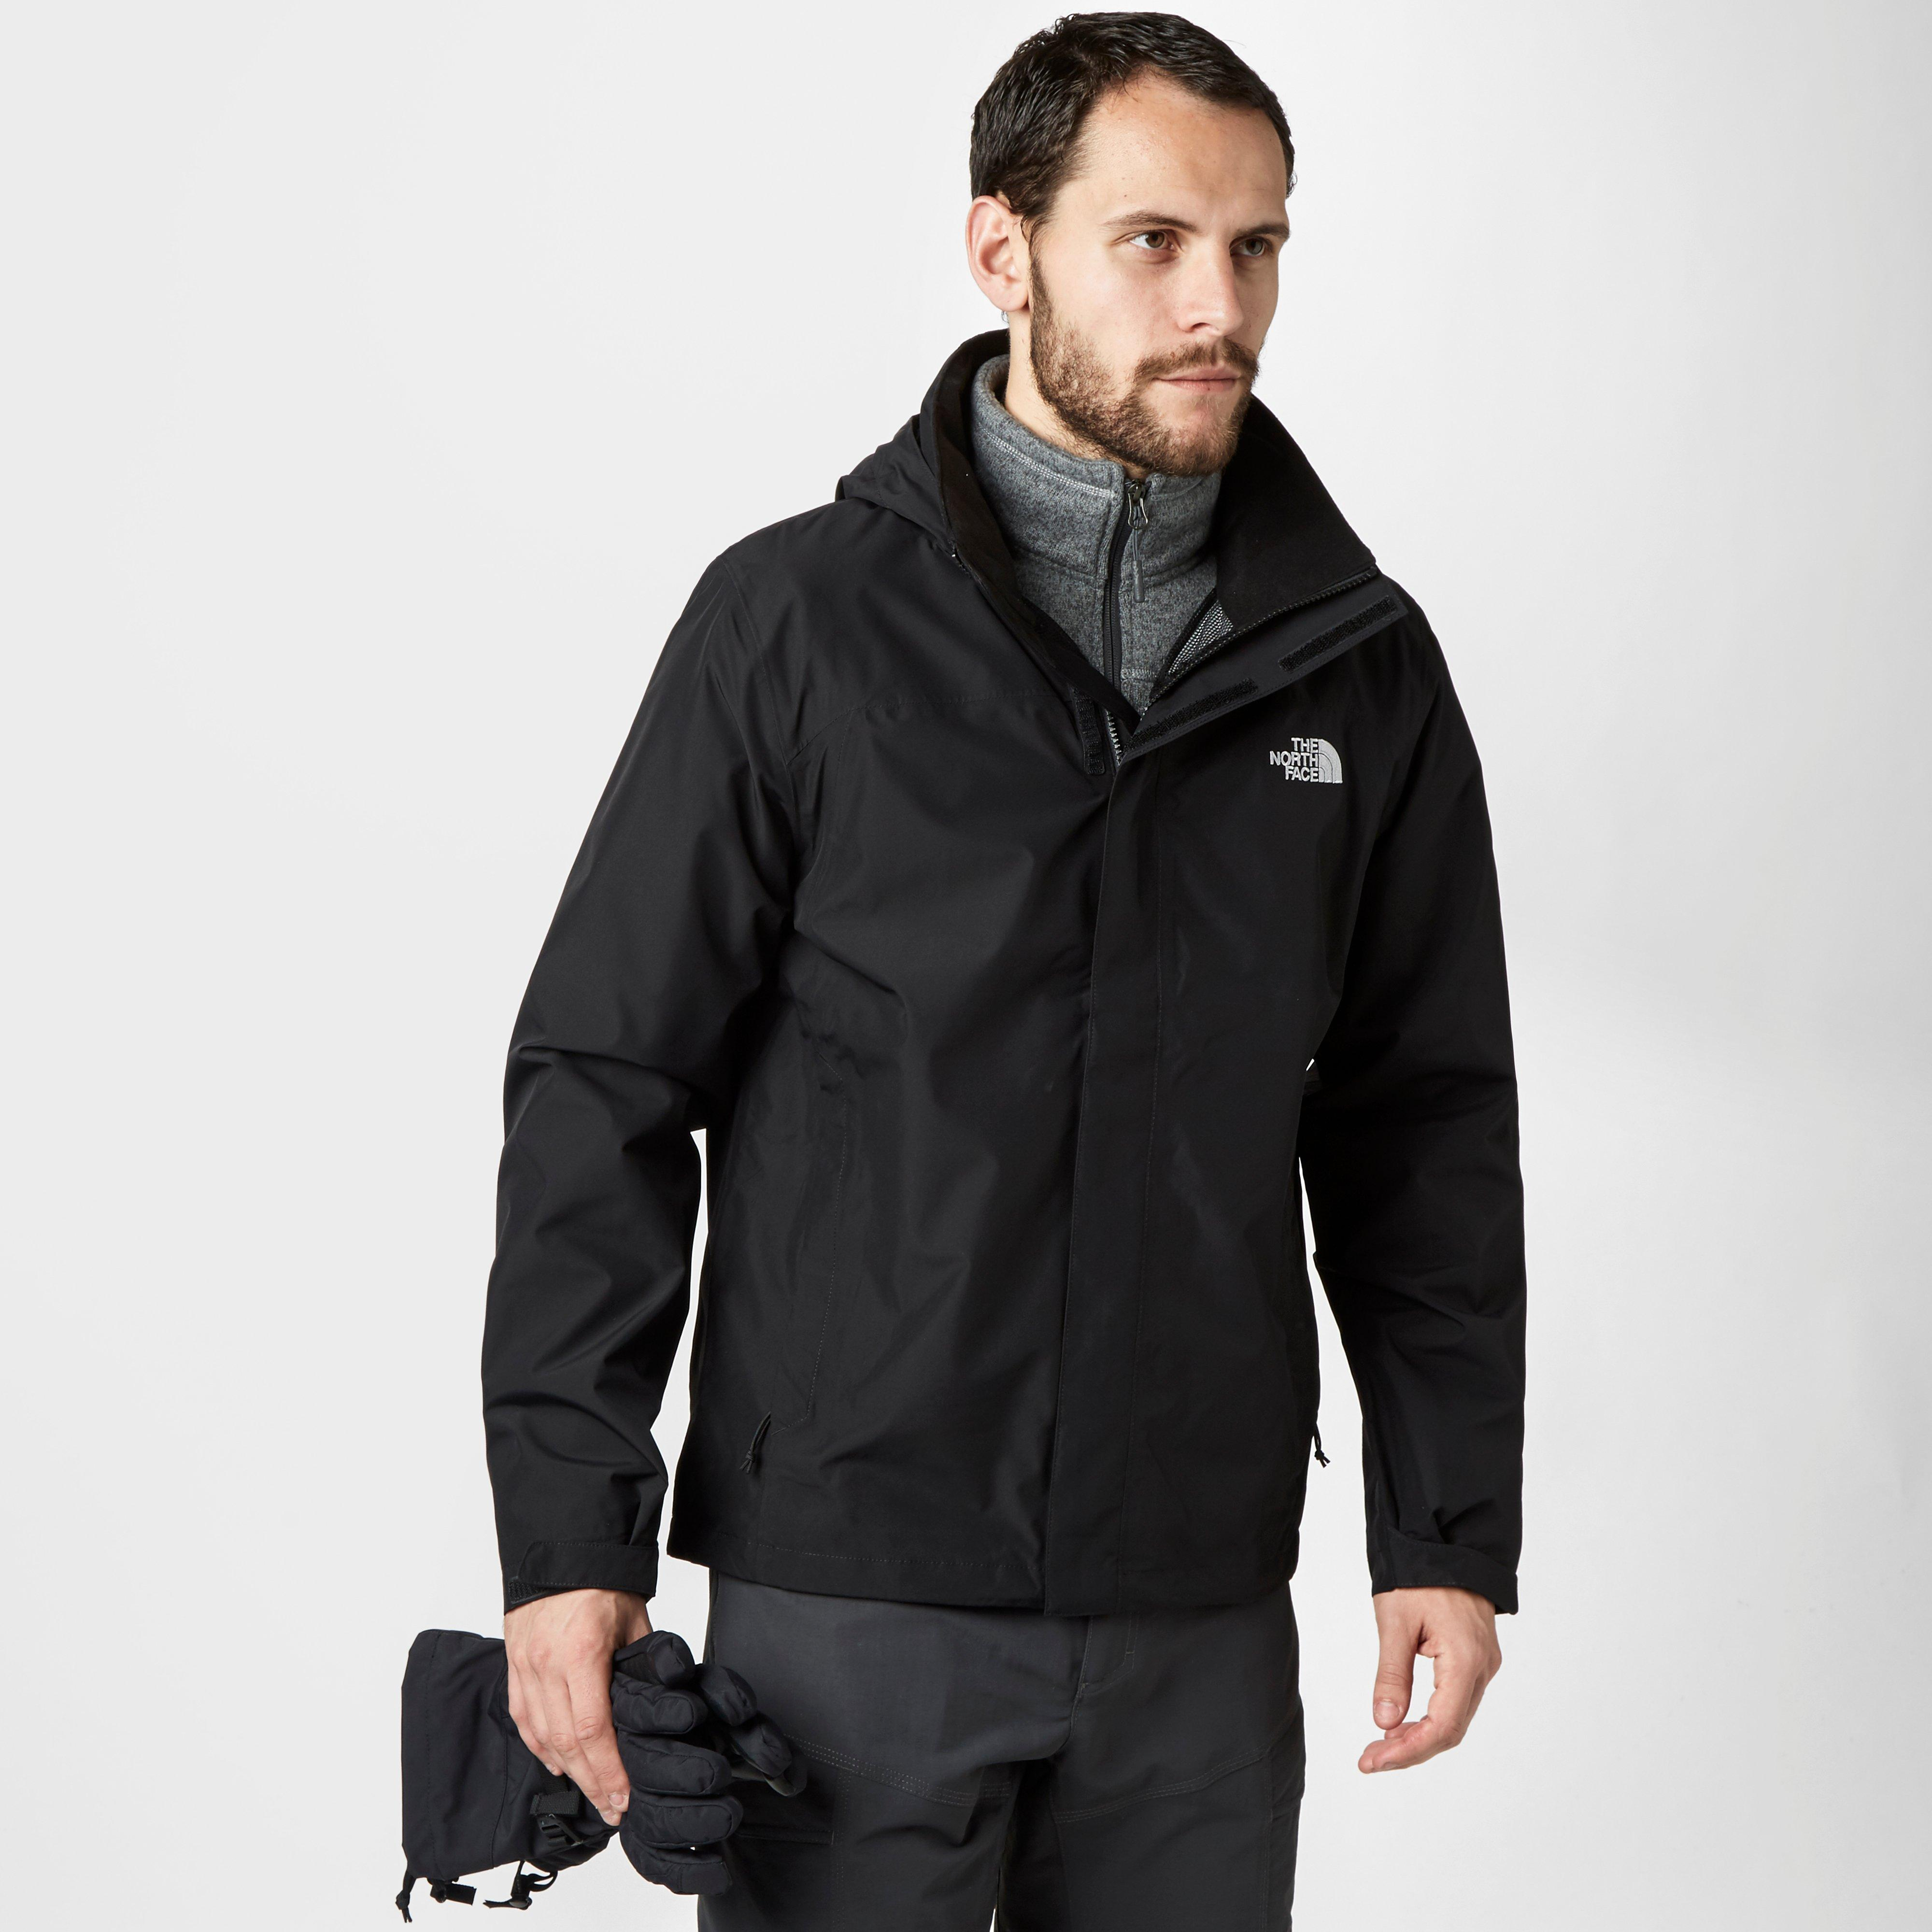 3ababa036 Men's Sangro Jacket